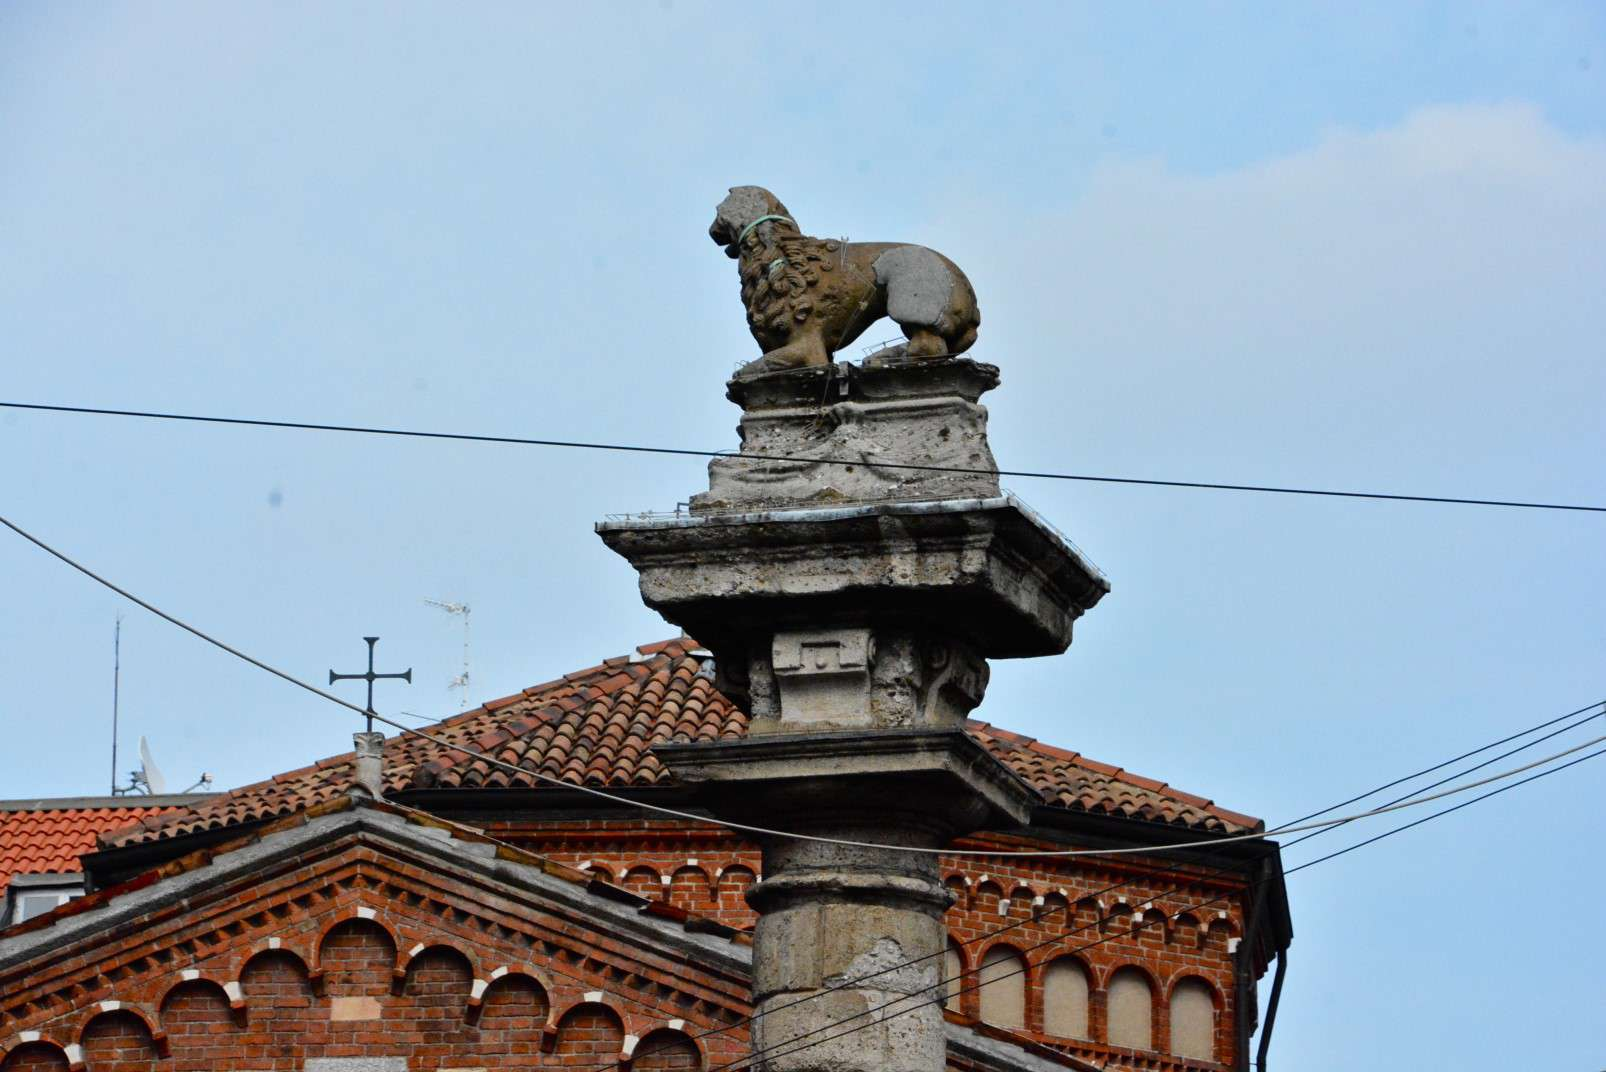 The Lion in Piazza San Babila, Milan